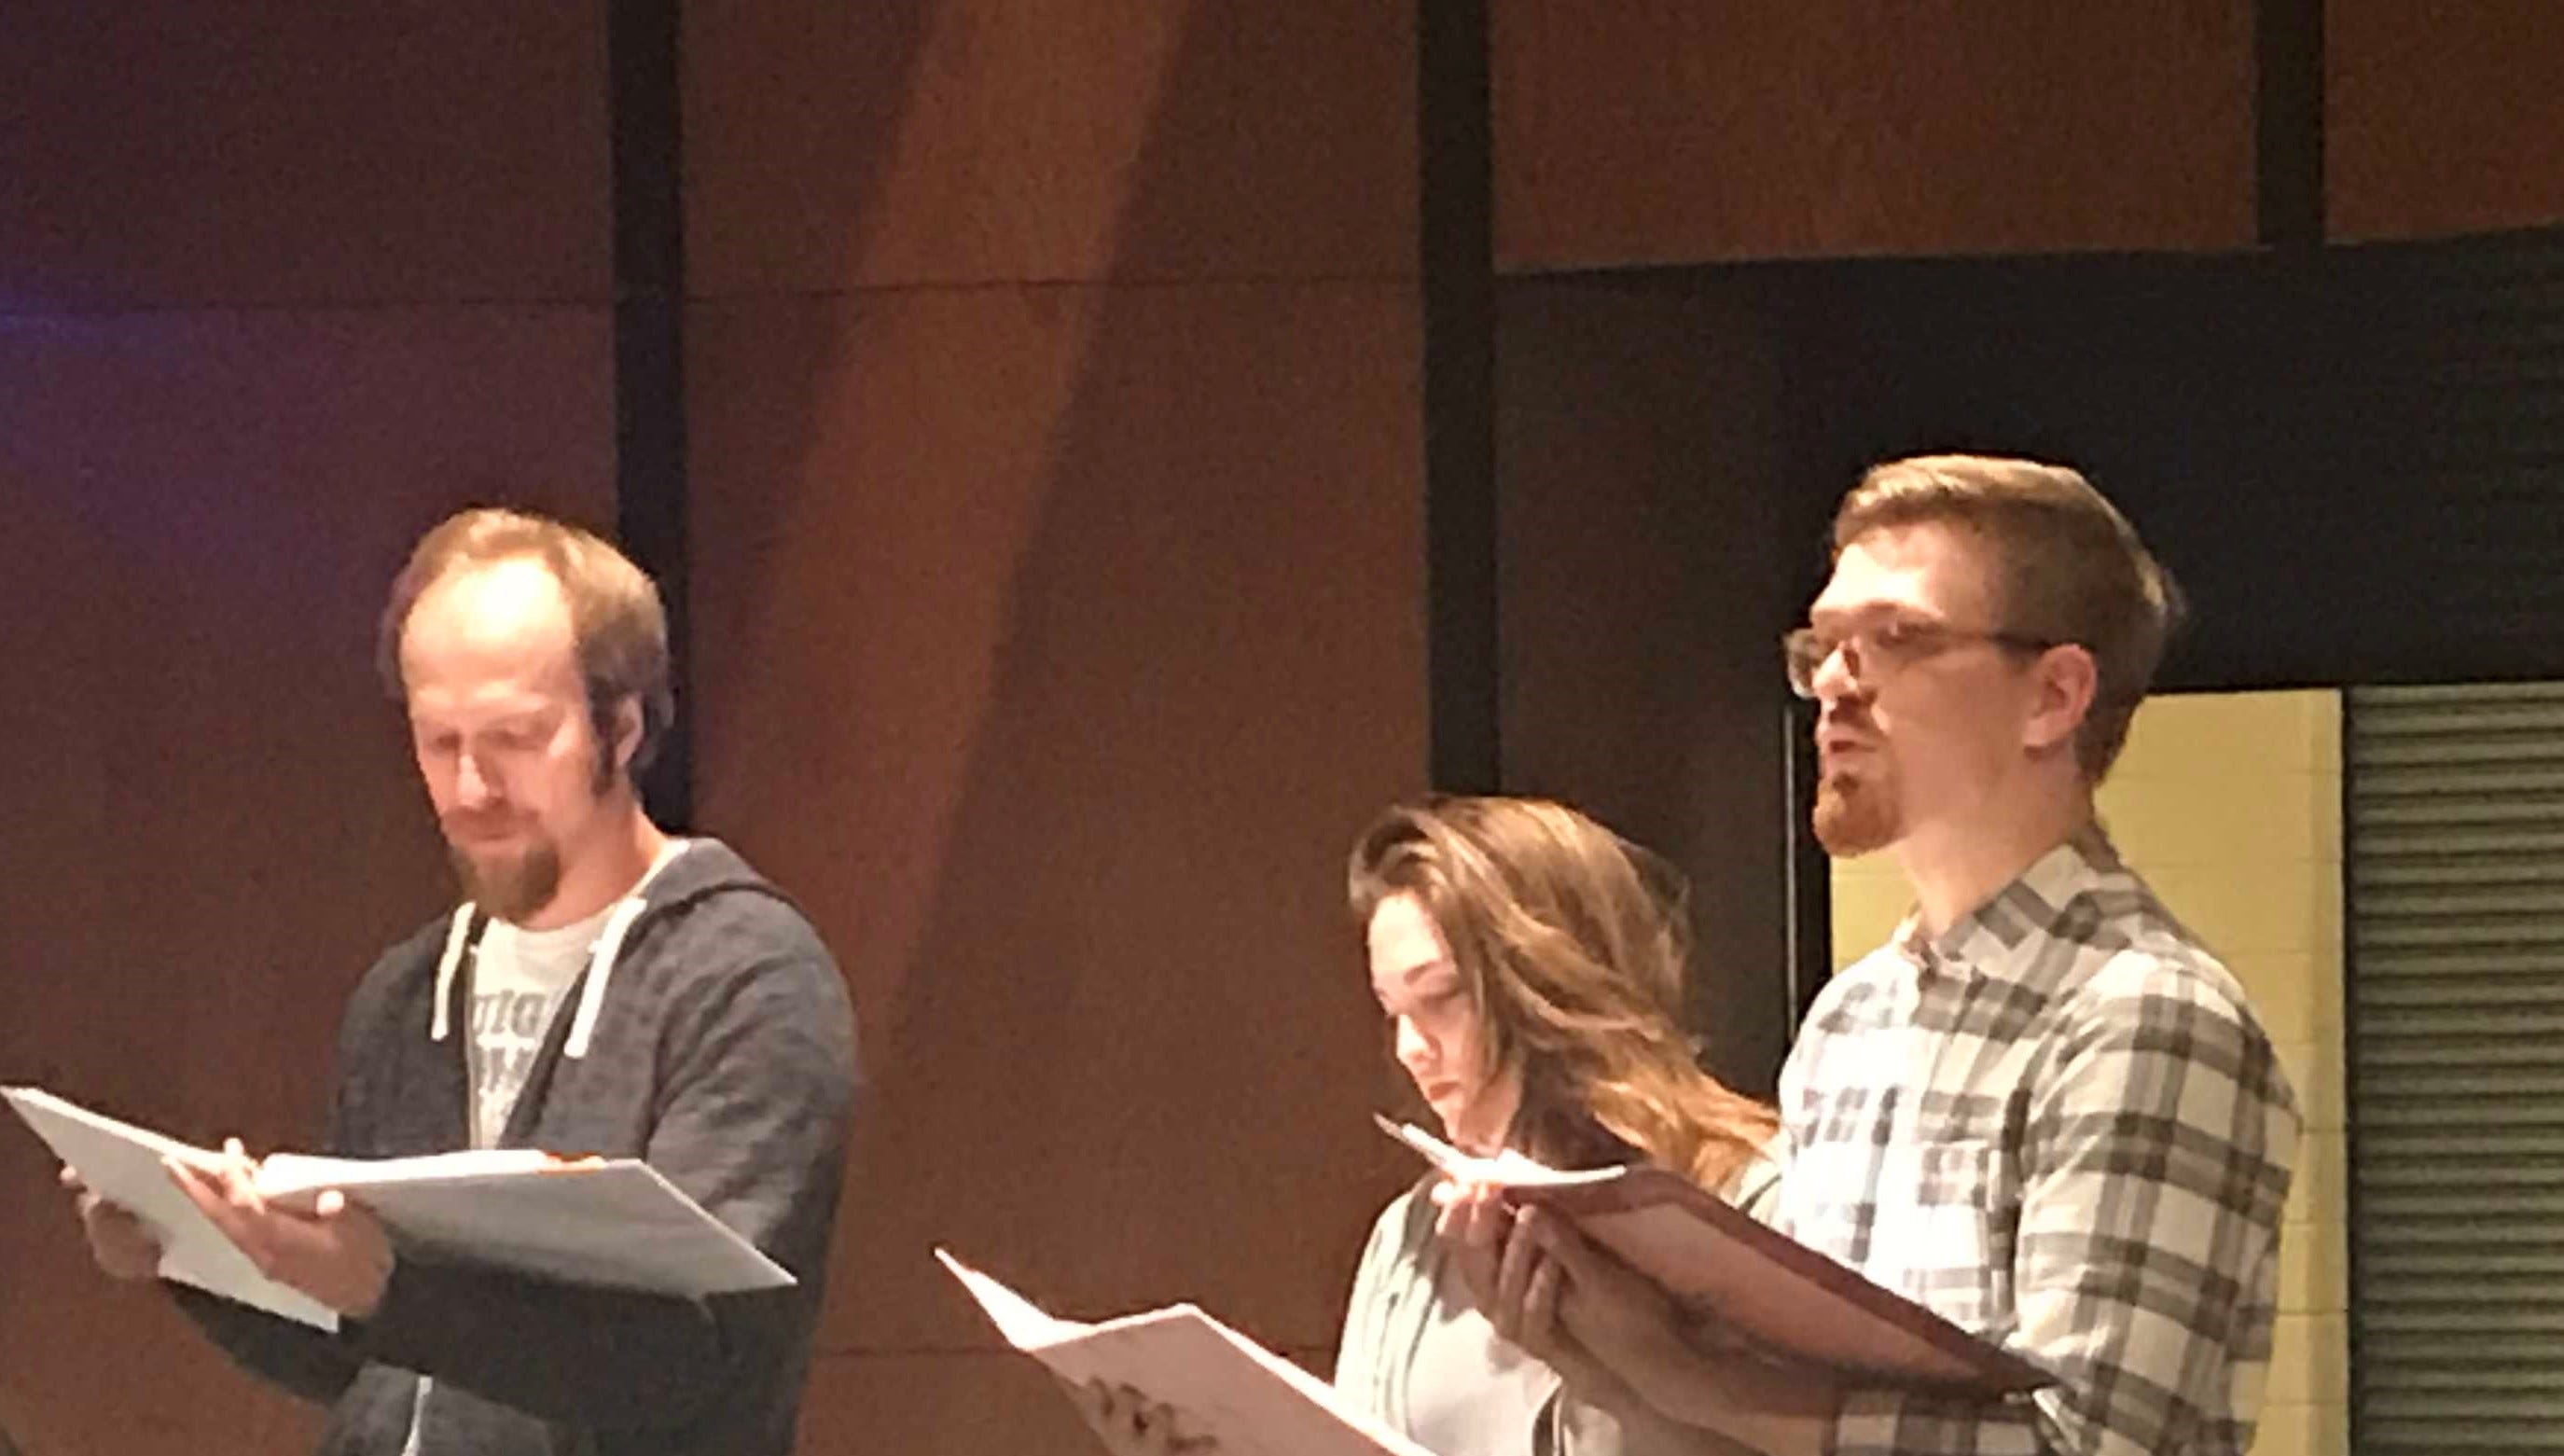 Fond du Lac actors to bring 'Sweeney Todd' to life for show's 40th anniversary